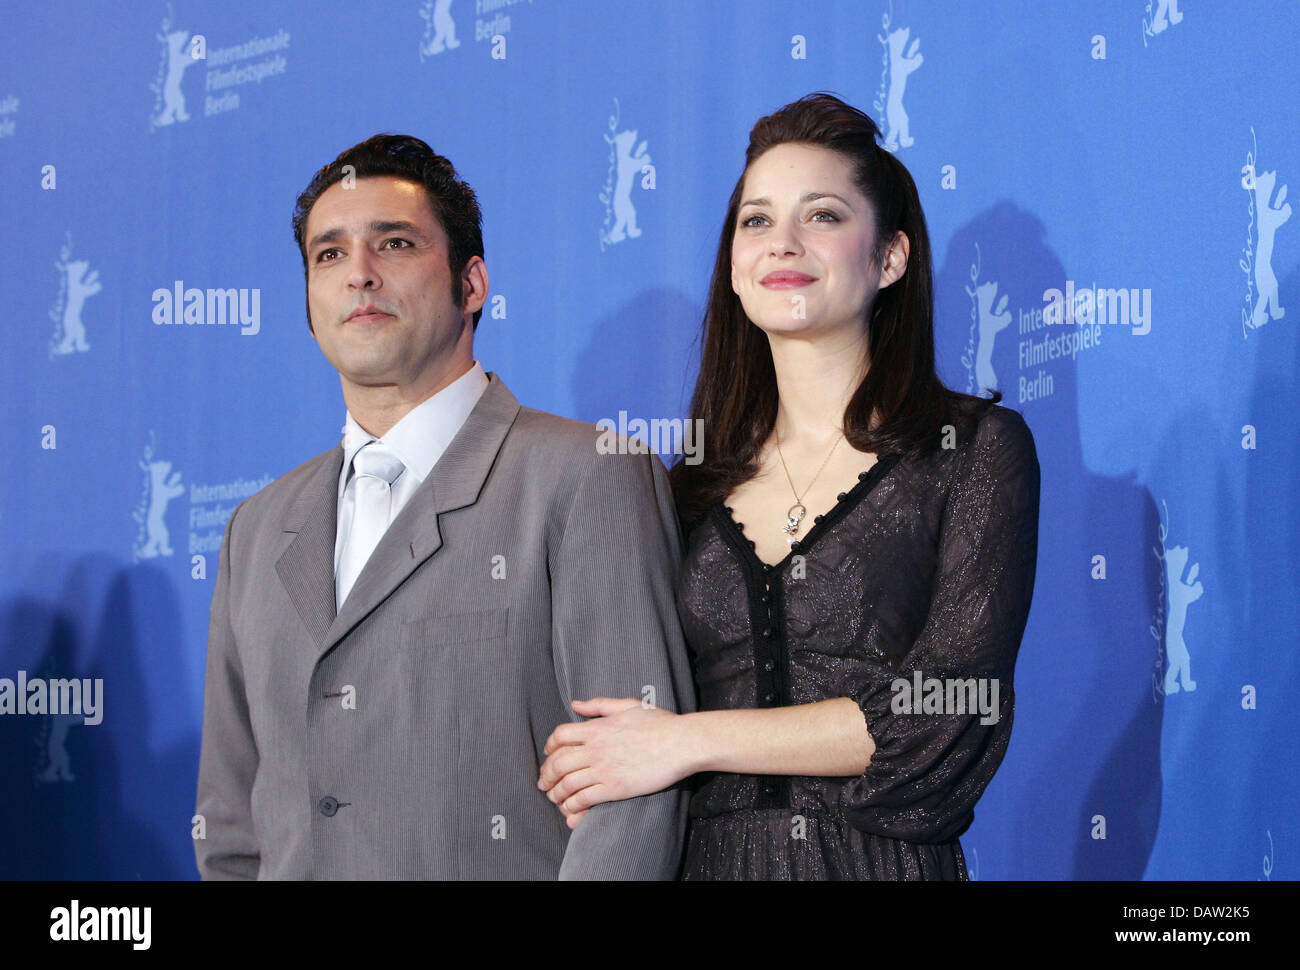 French Actors Jean Pierre Martins And Marion Cotillard Who